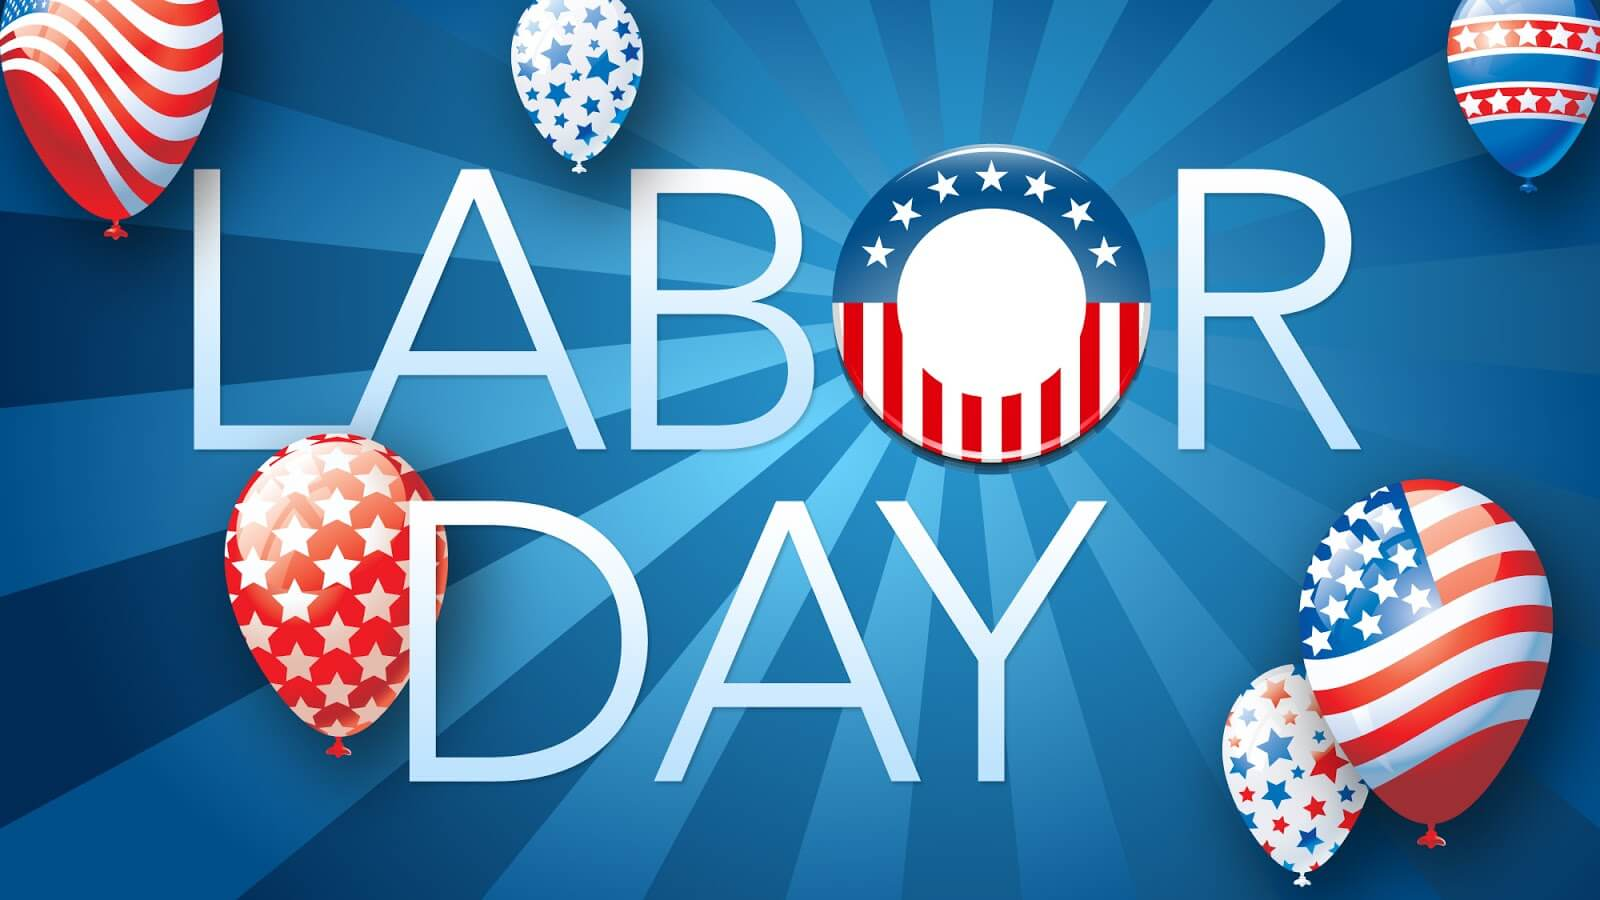 happy labour labor day wishes baloon flags hd wallpaper